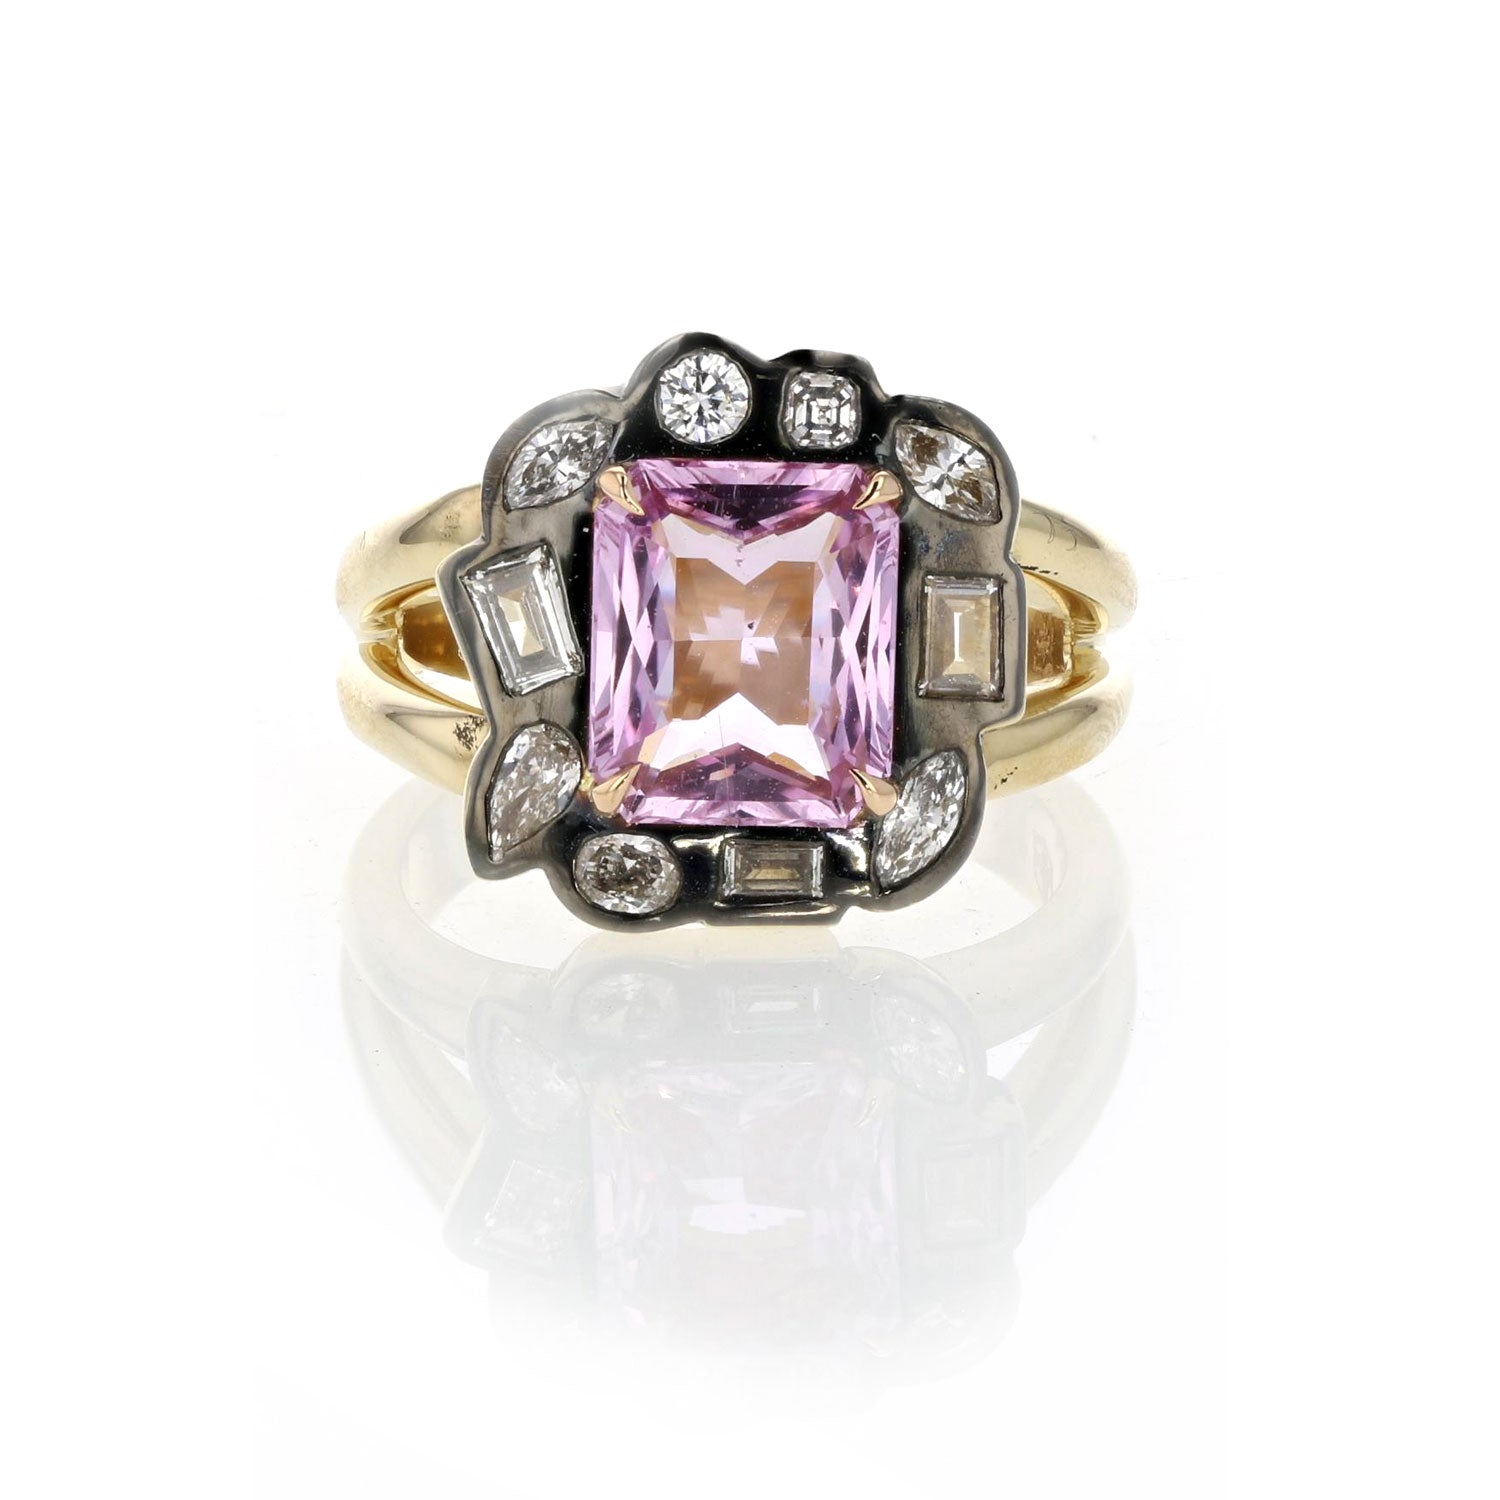 One of a Kind Pink Sapphire Ring